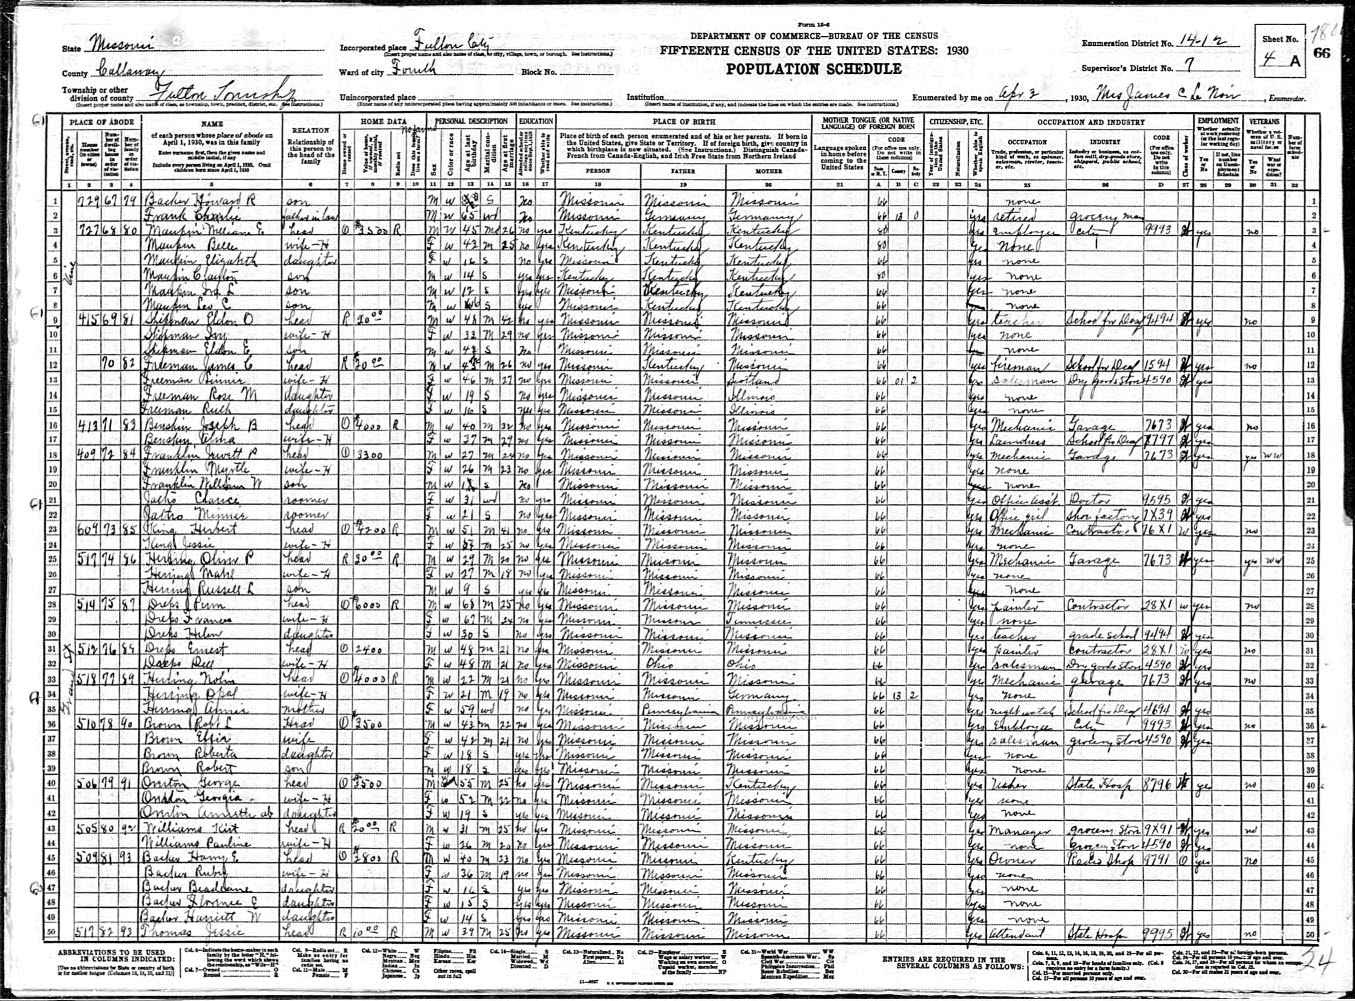 [Charles+Frank+1930+Census.x]